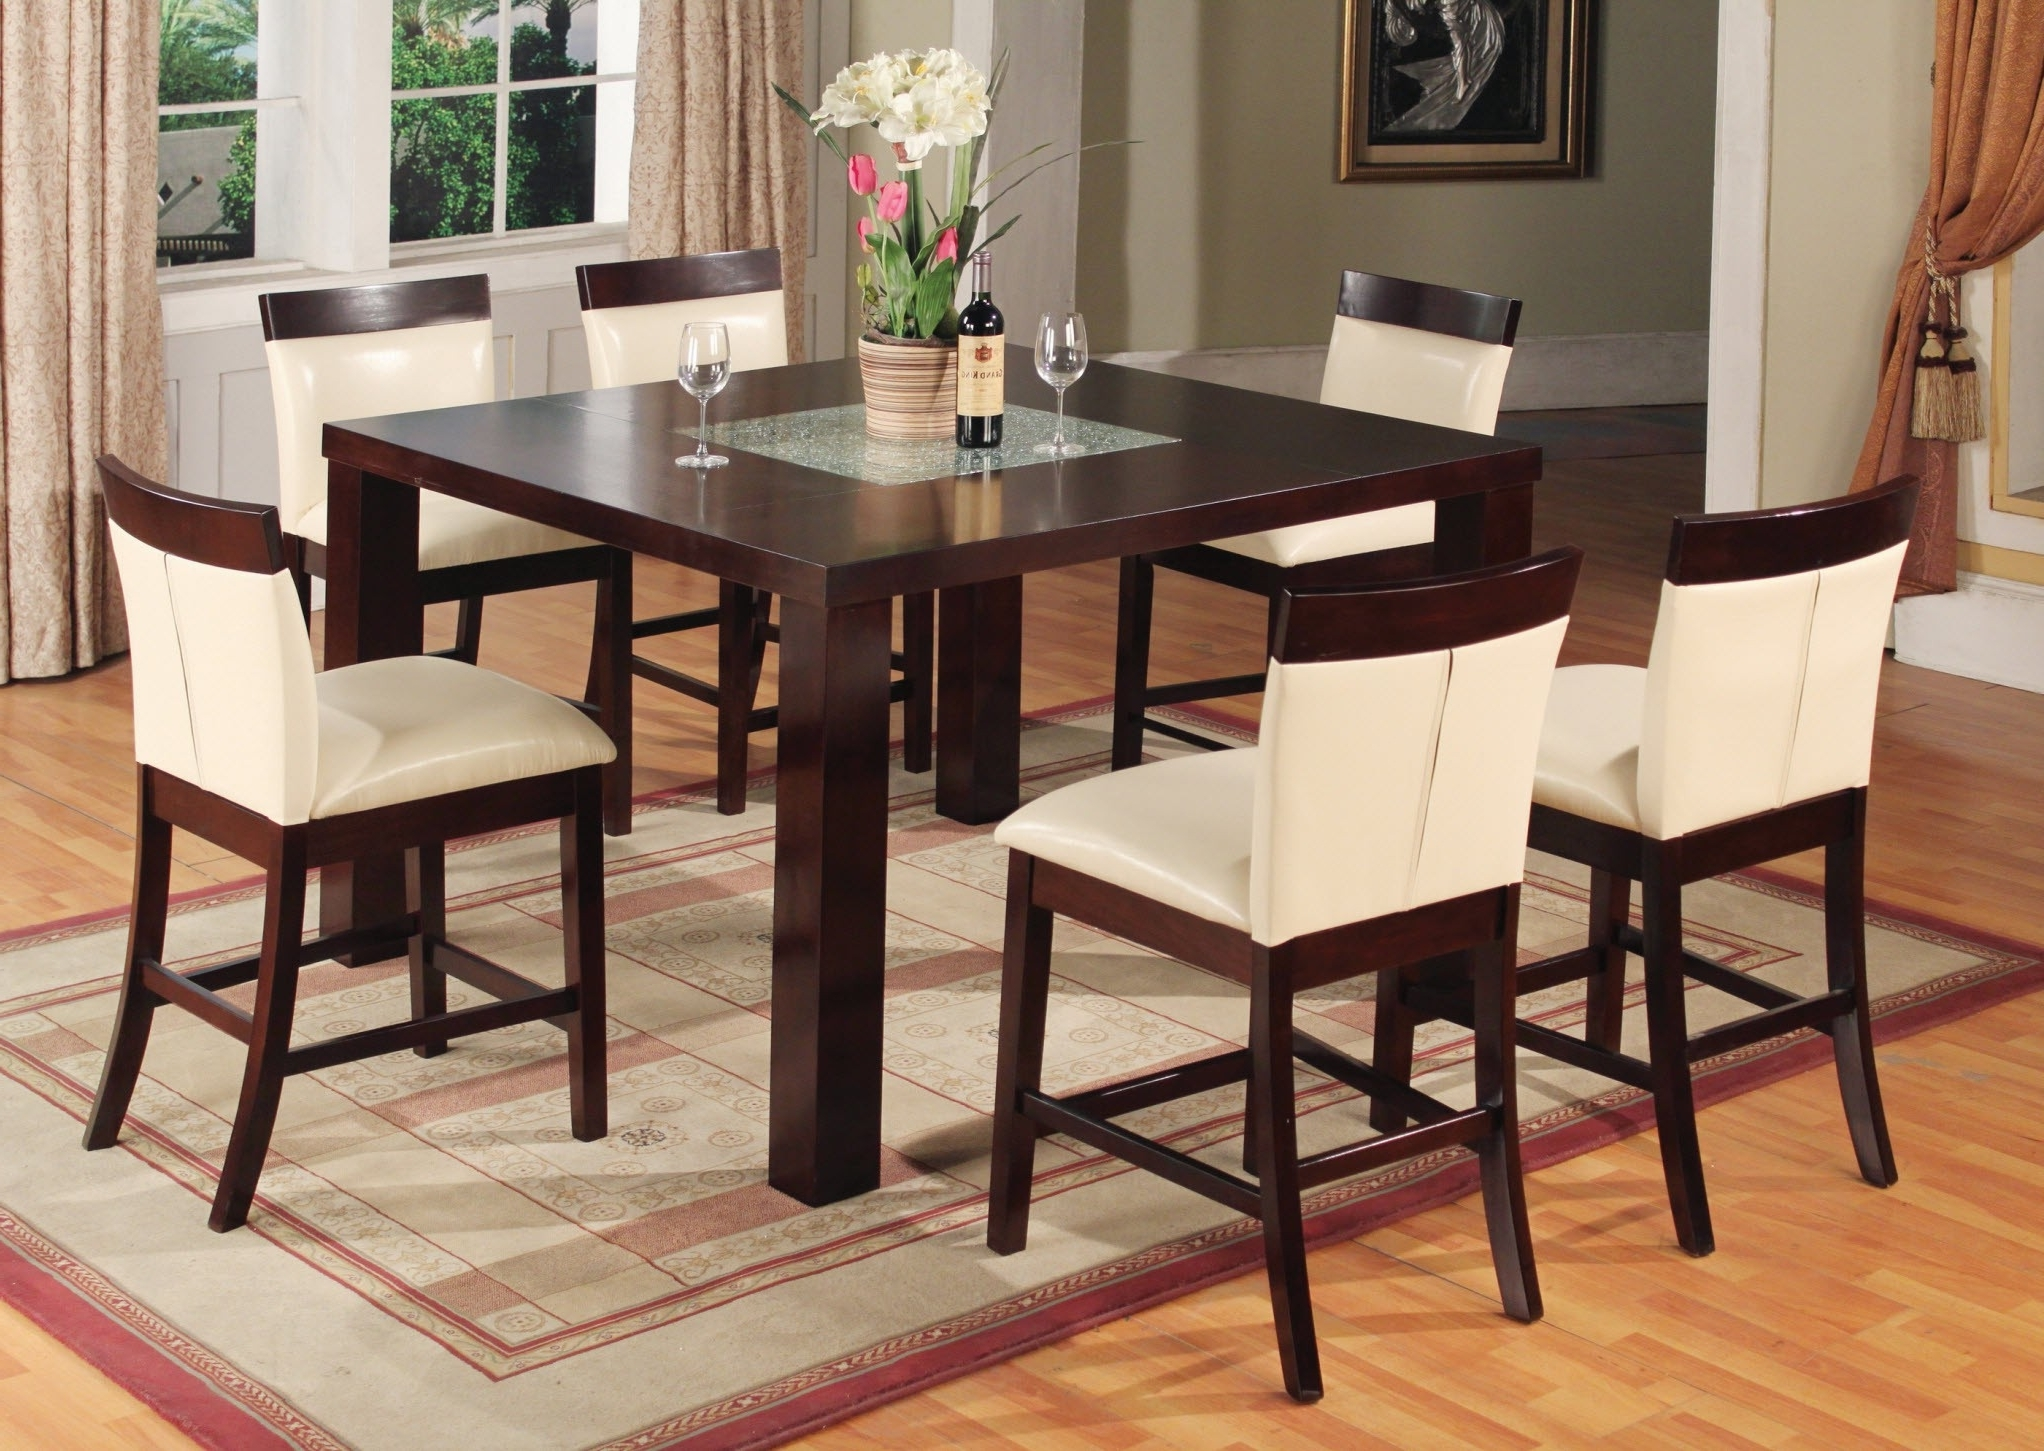 Most Recently Released Jaxon 6 Piece Rectangle Dining Sets With Bench & Uph Chairs For Countertop Dining Room Tables – Dining Room Design (View 18 of 25)